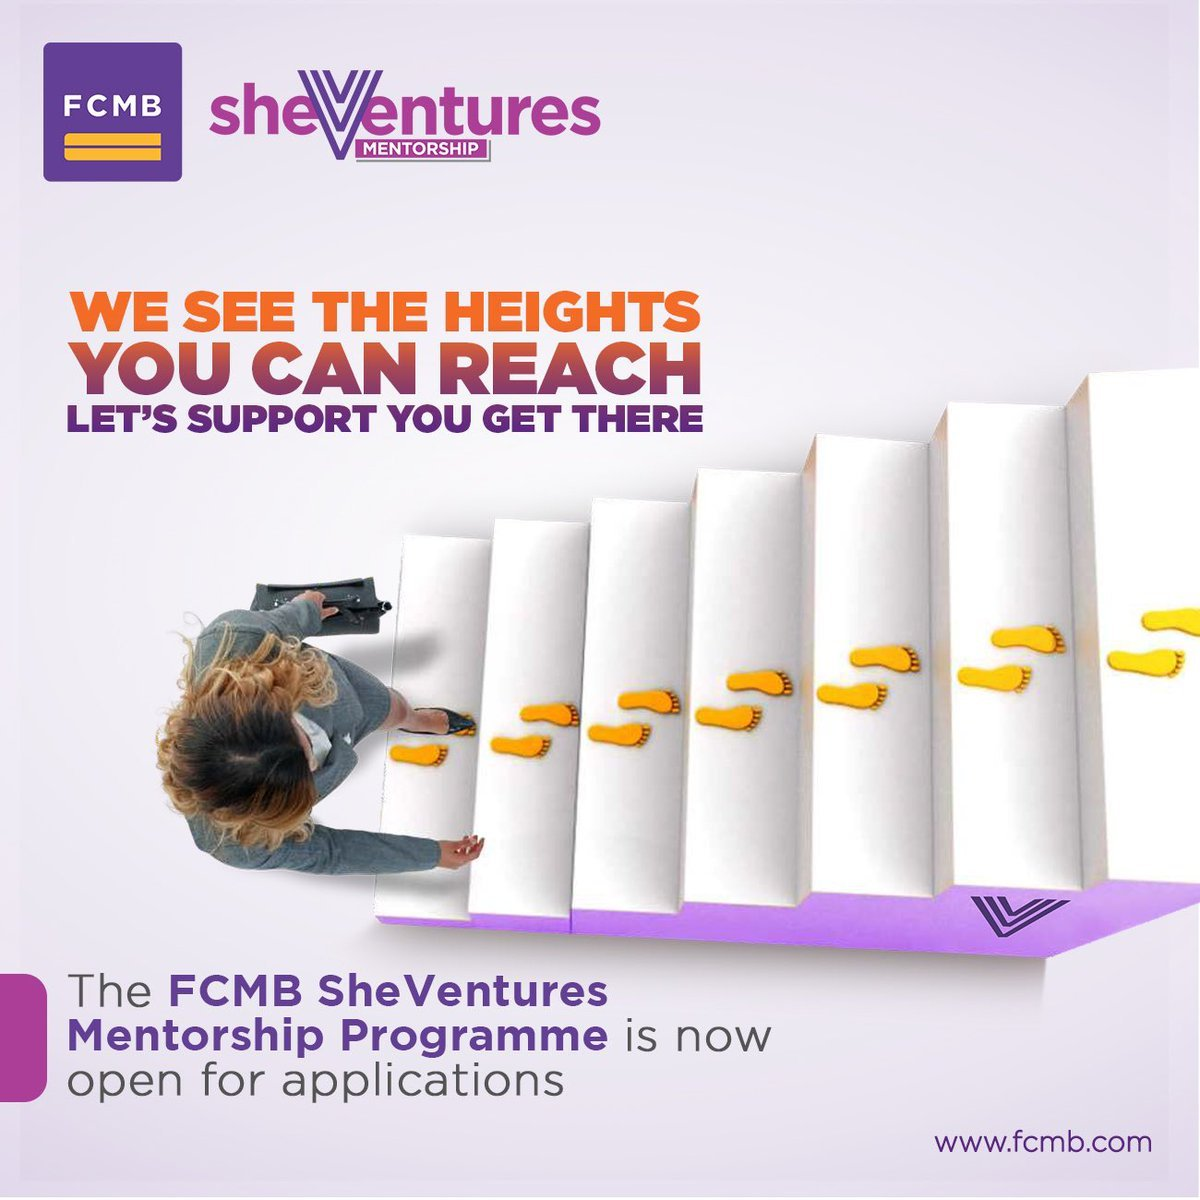 FCMB SheVentures Mentorship Program